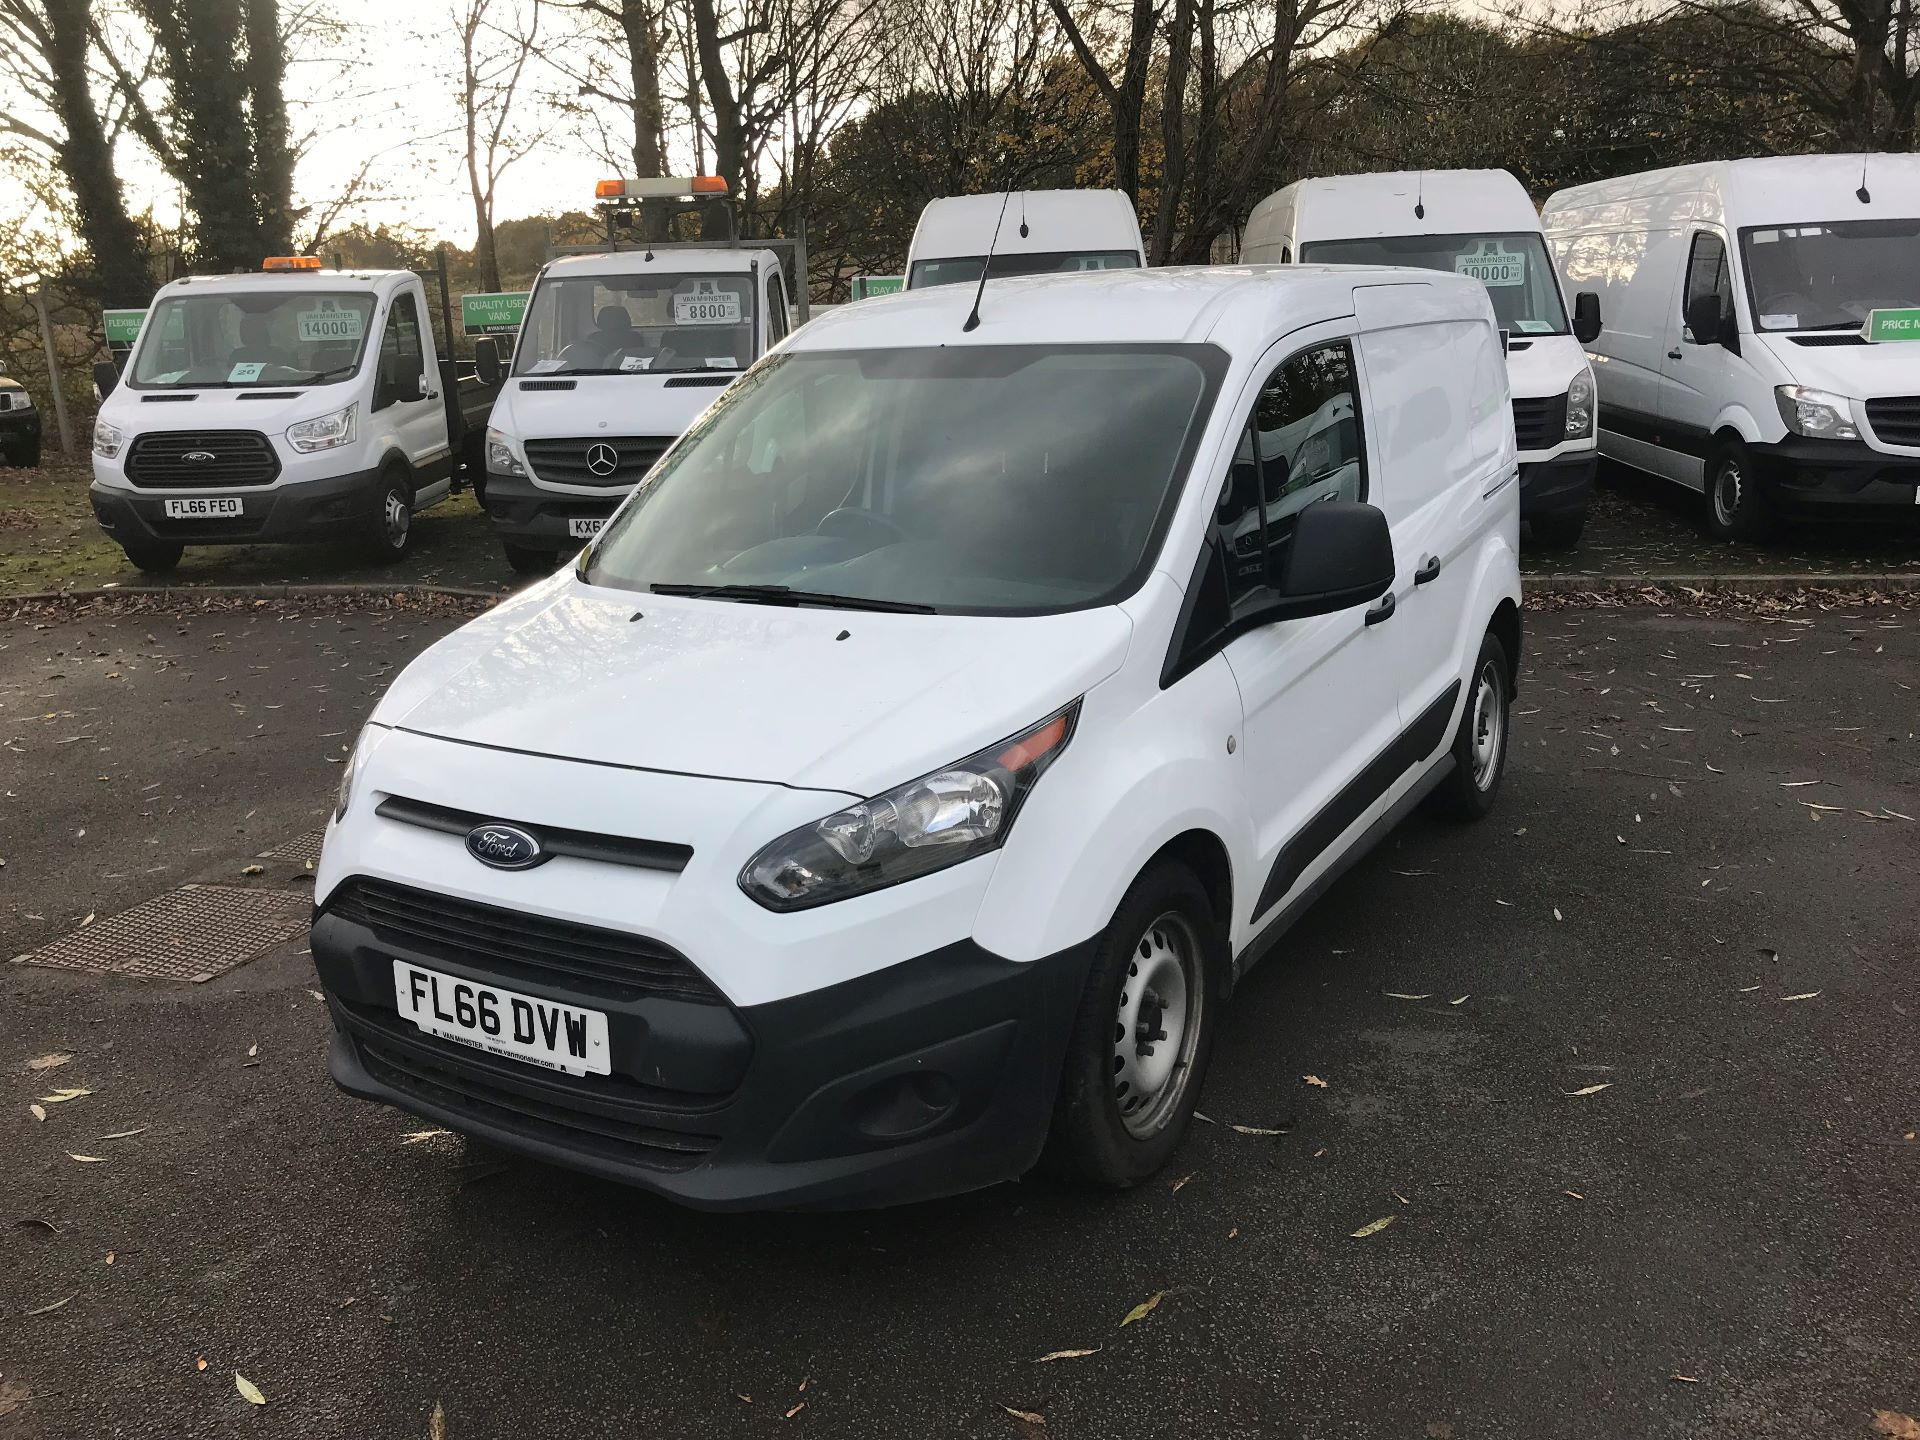 2016 Ford Transit Connect  220 L1 Diesel 1.5 TDCi 75PS Van EURO 6 (FL66DVW) Image 2